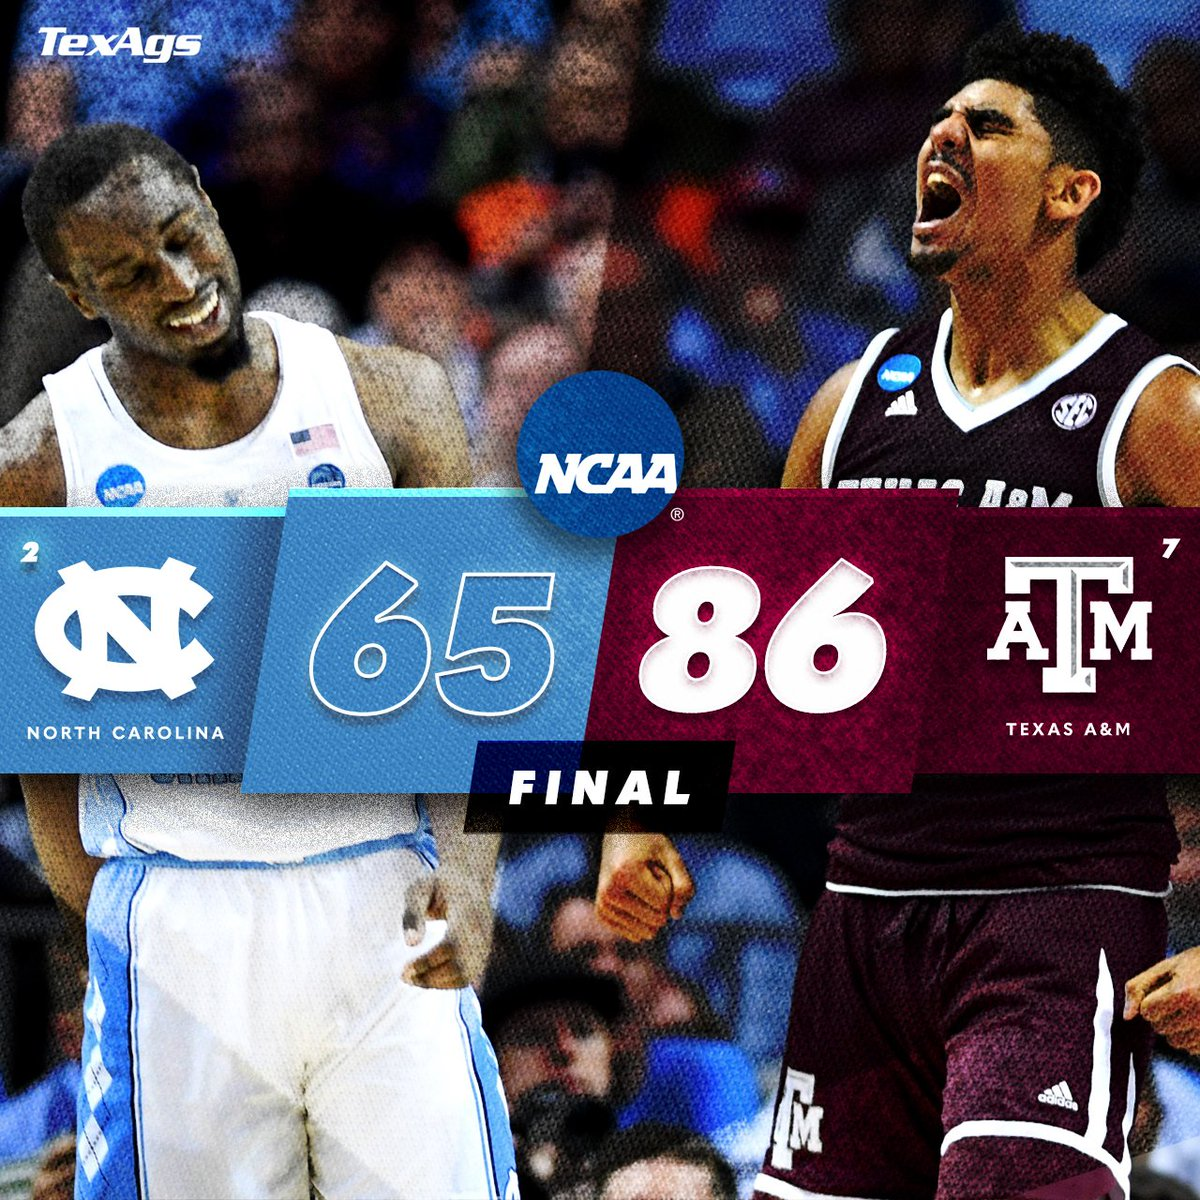 TEXAS A&M IS HEADED TO THE SWEET 16.